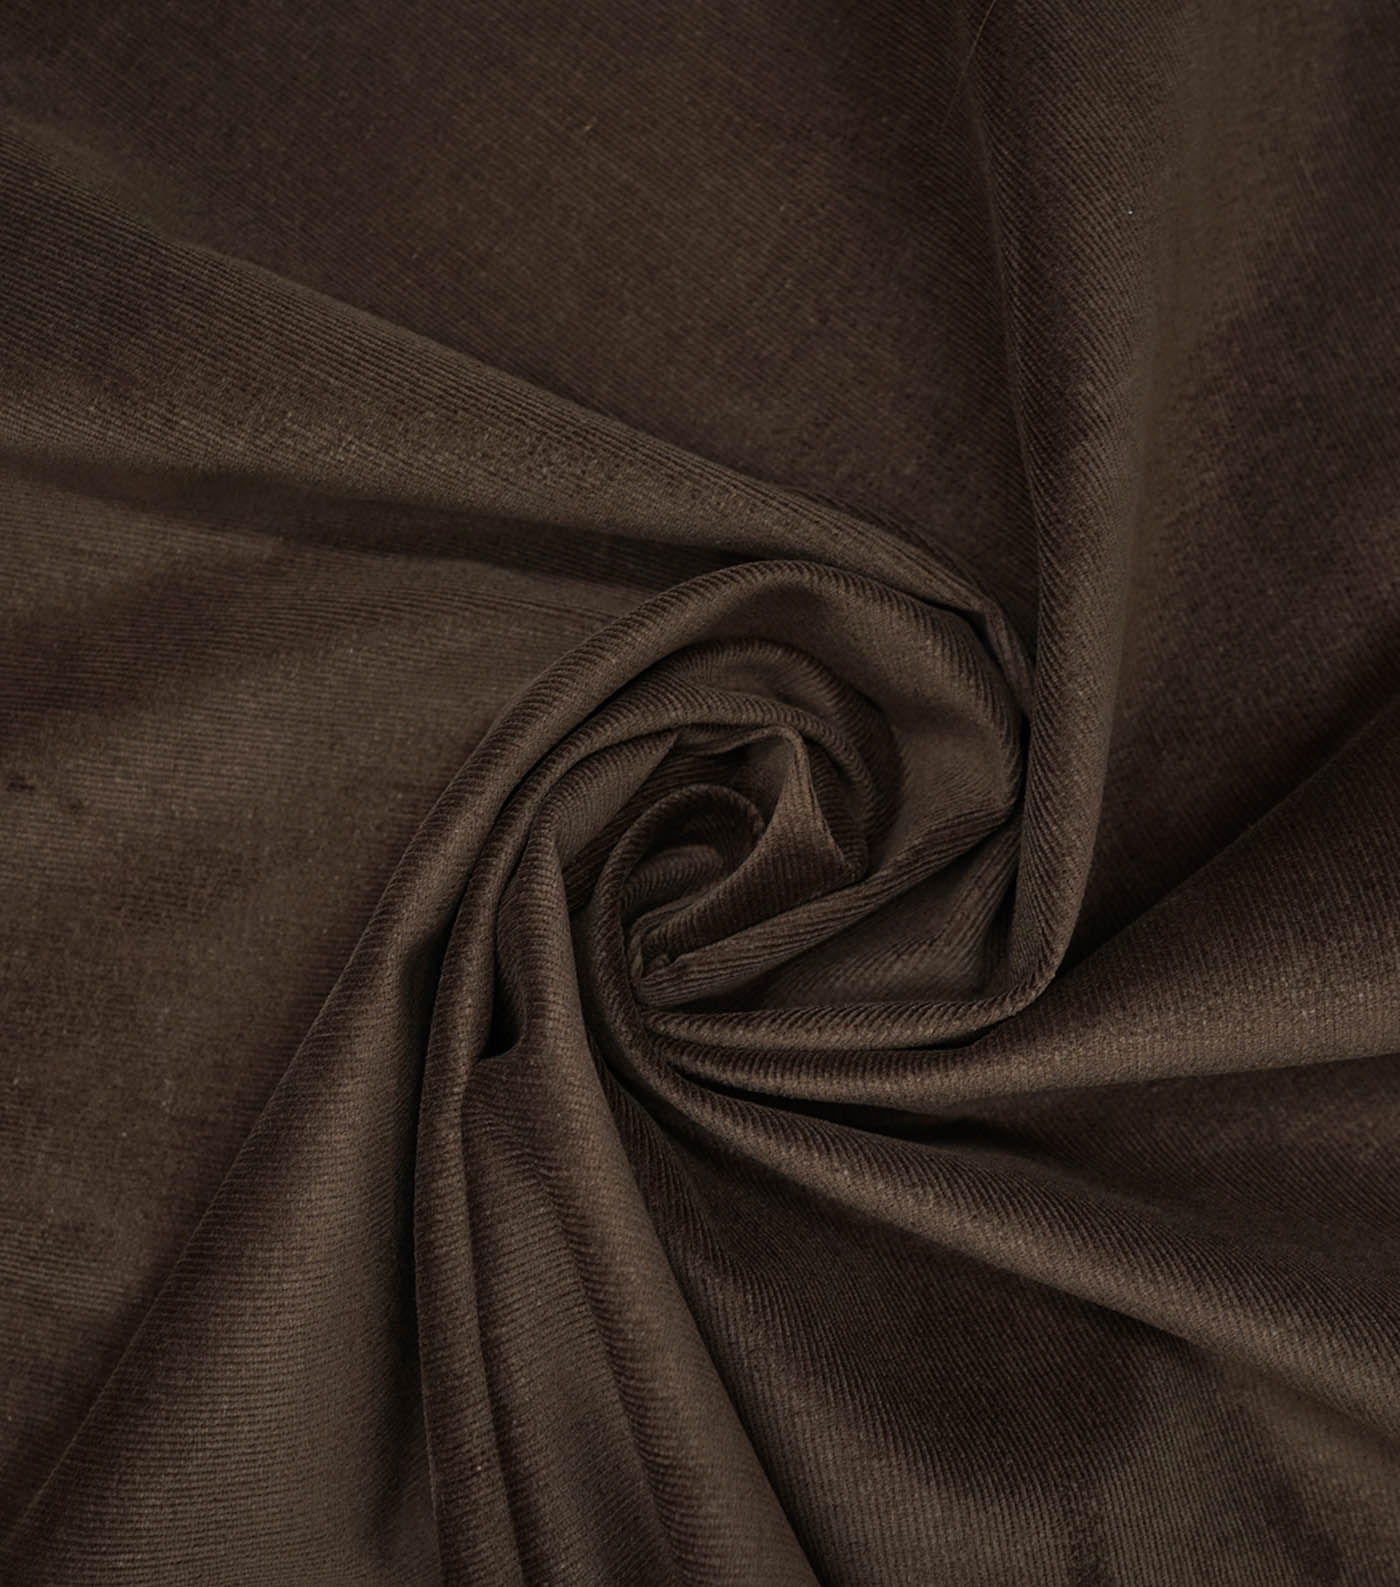 Sportswear Stretch Corduroy Fabric -Brown